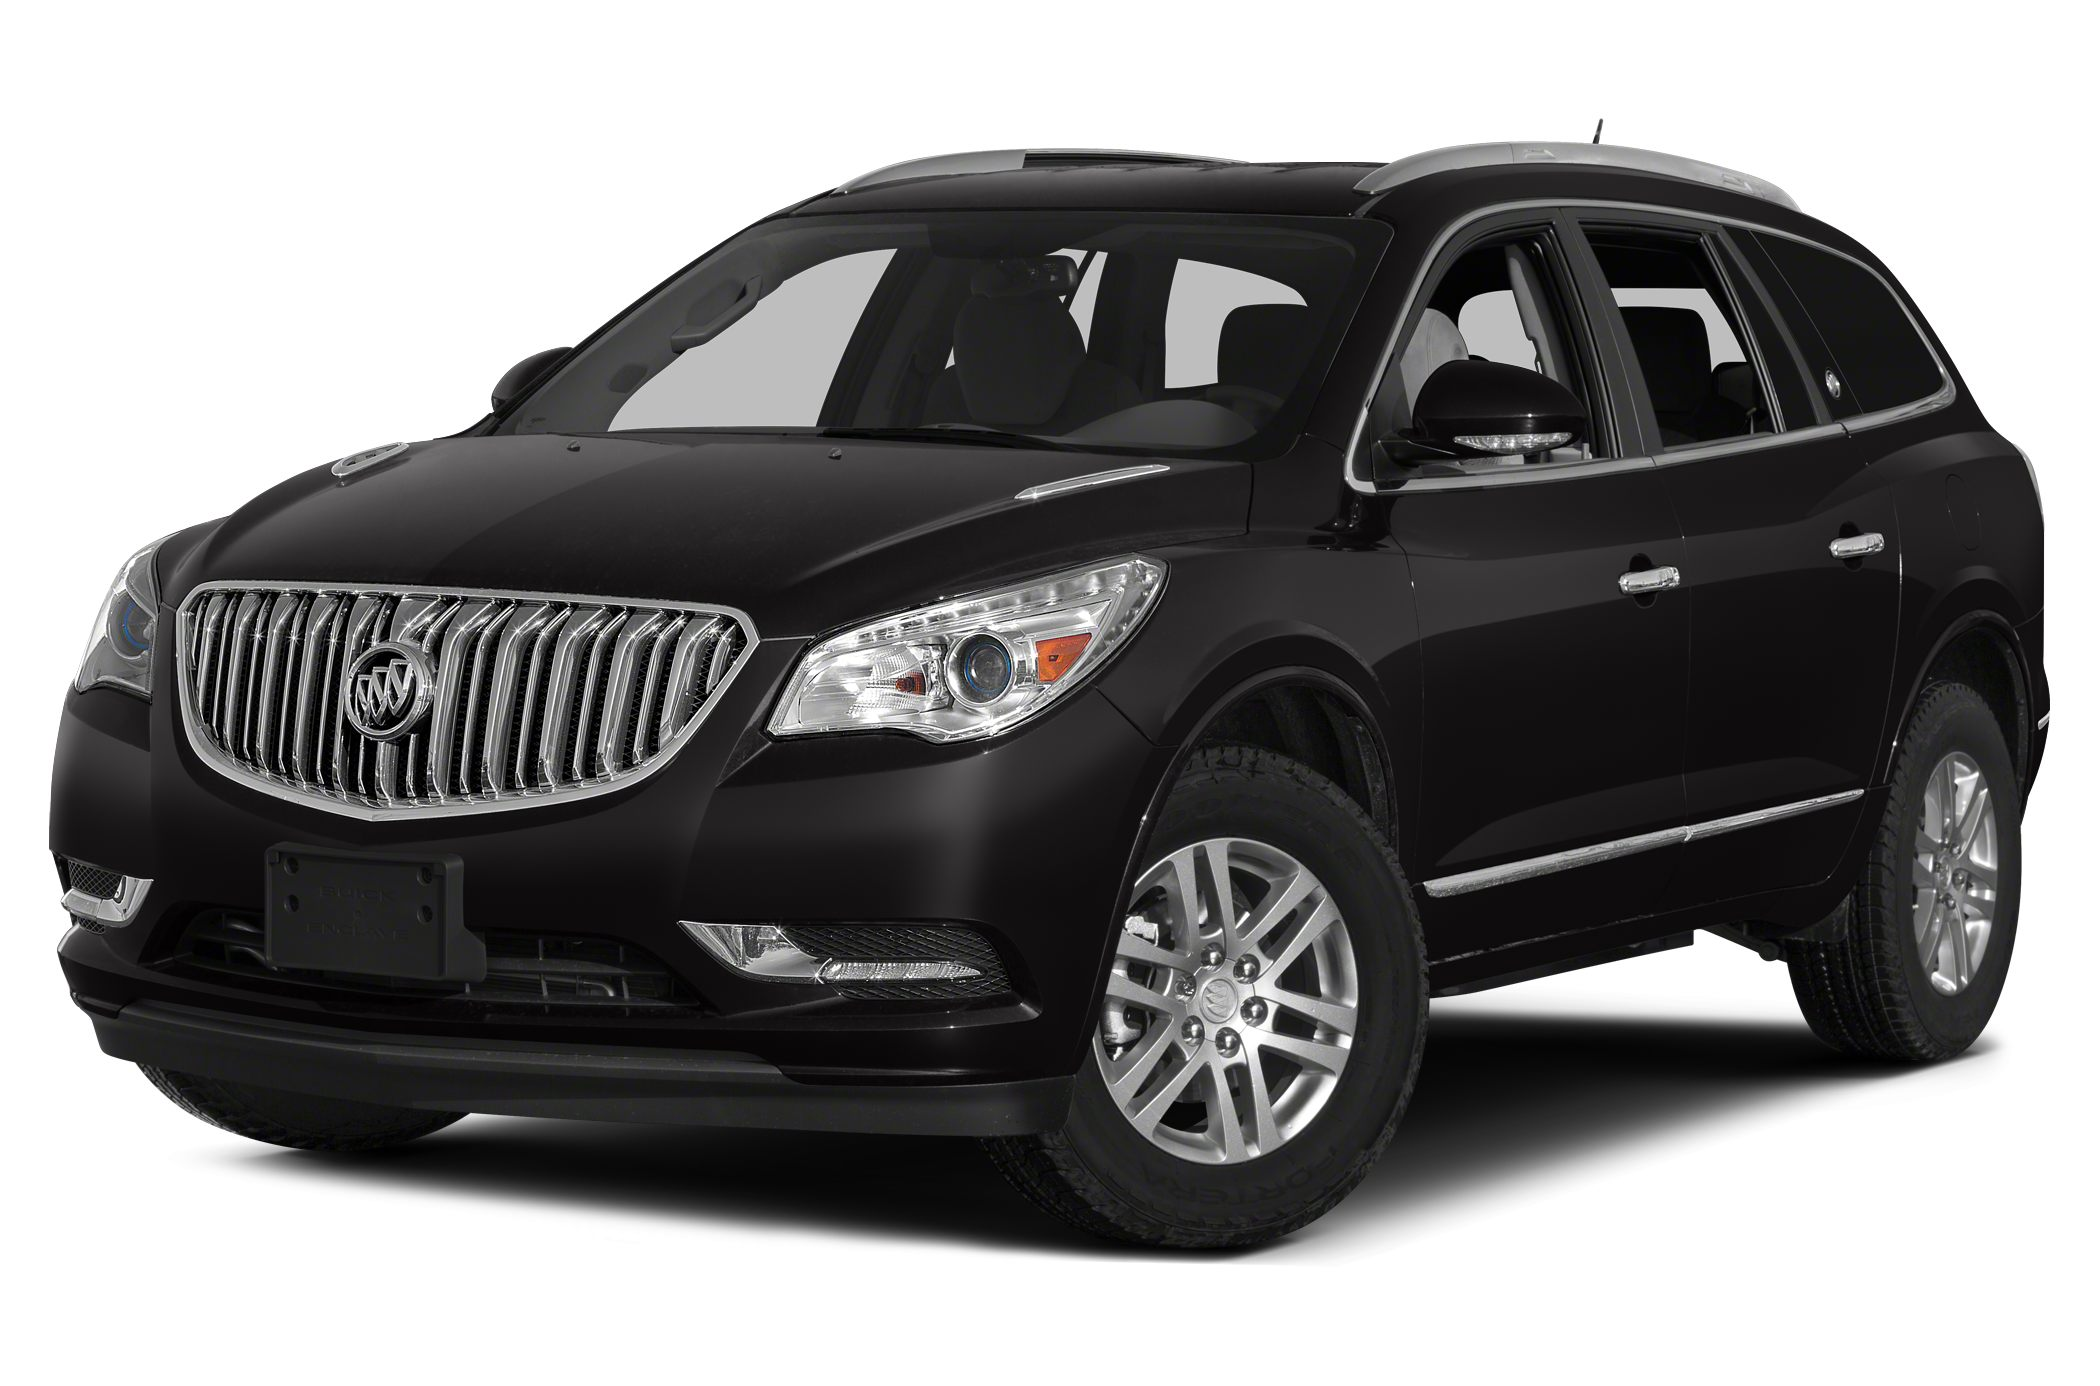 2015 Buick Enclave Leather SUV for sale in Greenville for $47,050 with 0 miles